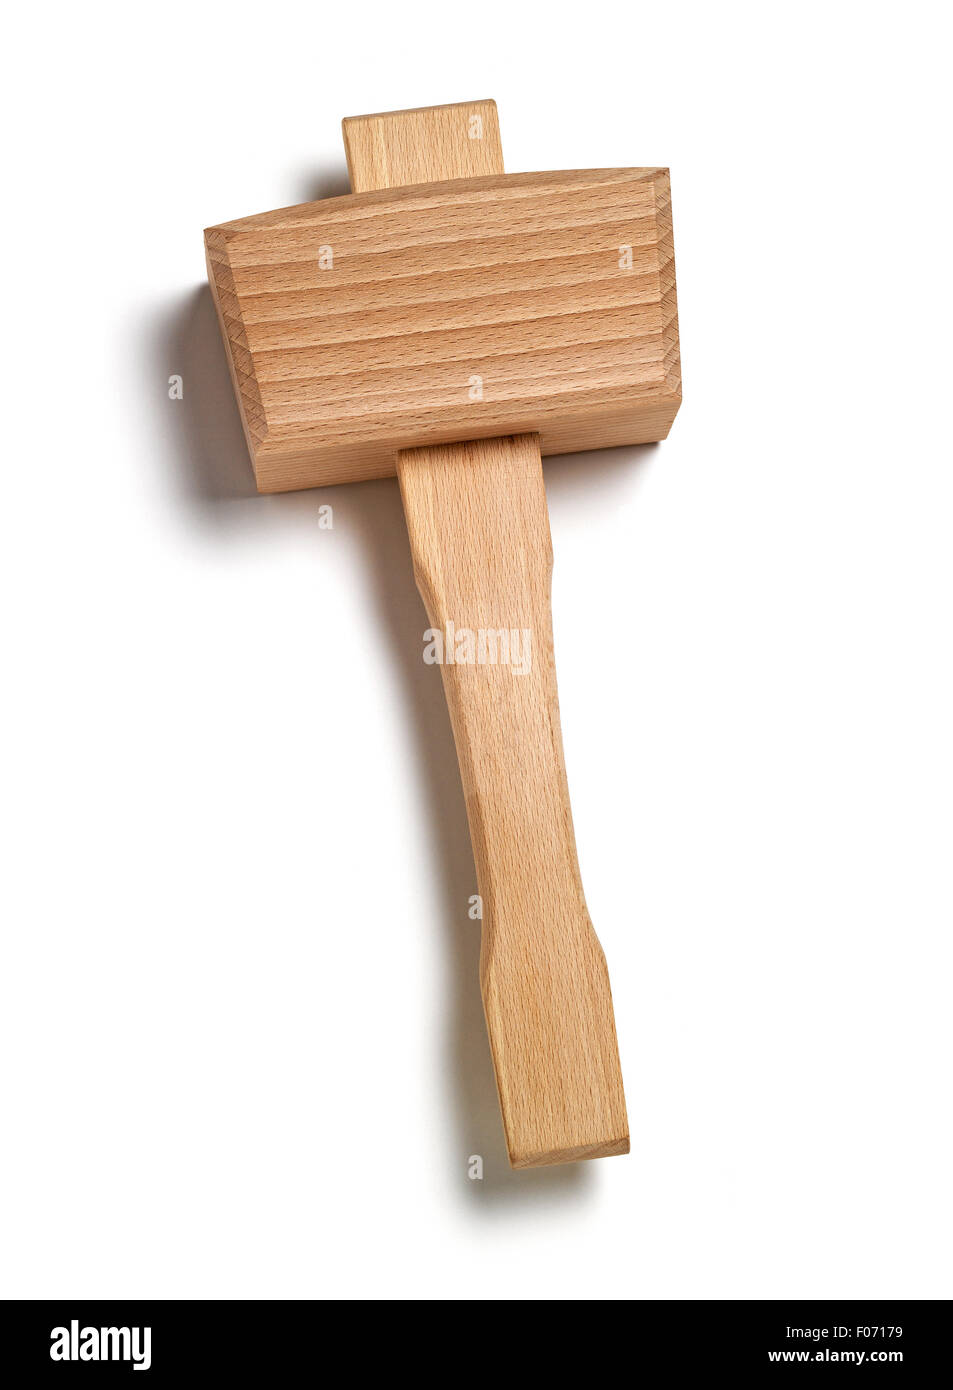 Isolated mallet for woodworking - Stock Image